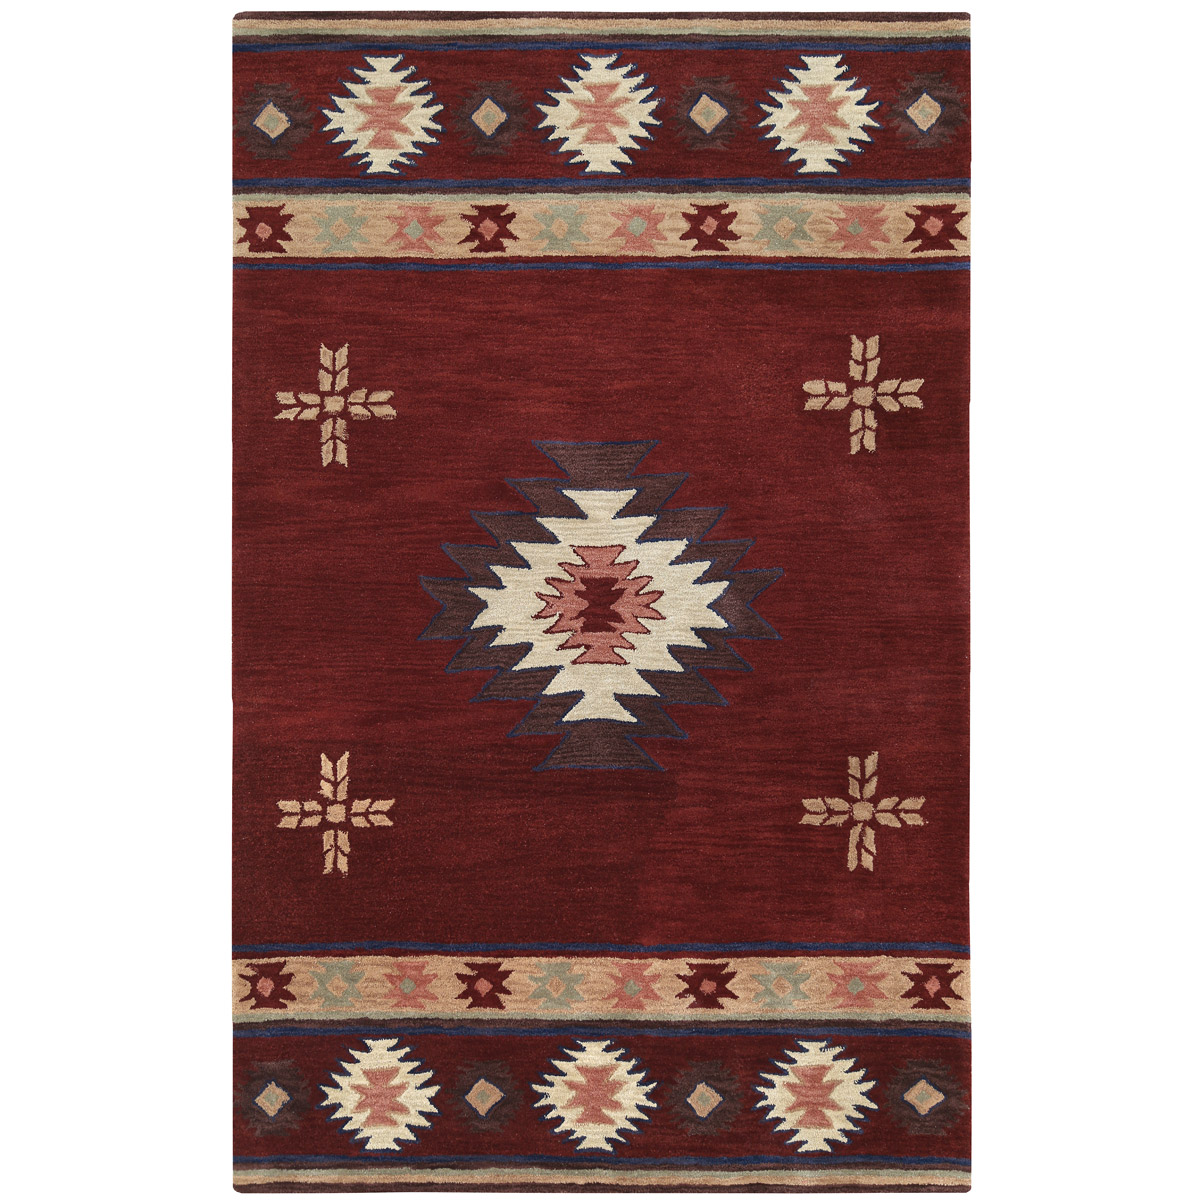 Southwest Burgundy Rug - 8 Ft Round